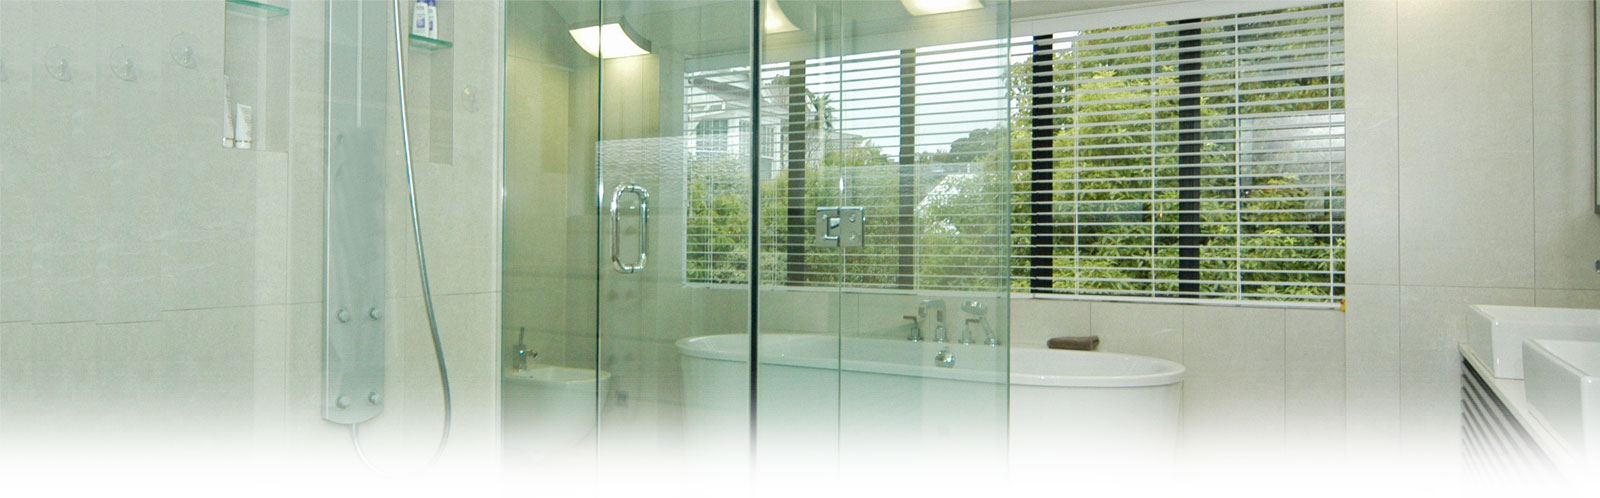 Frameless Glass Shower Doors - Custom Glass Railings - Glass Repair ...